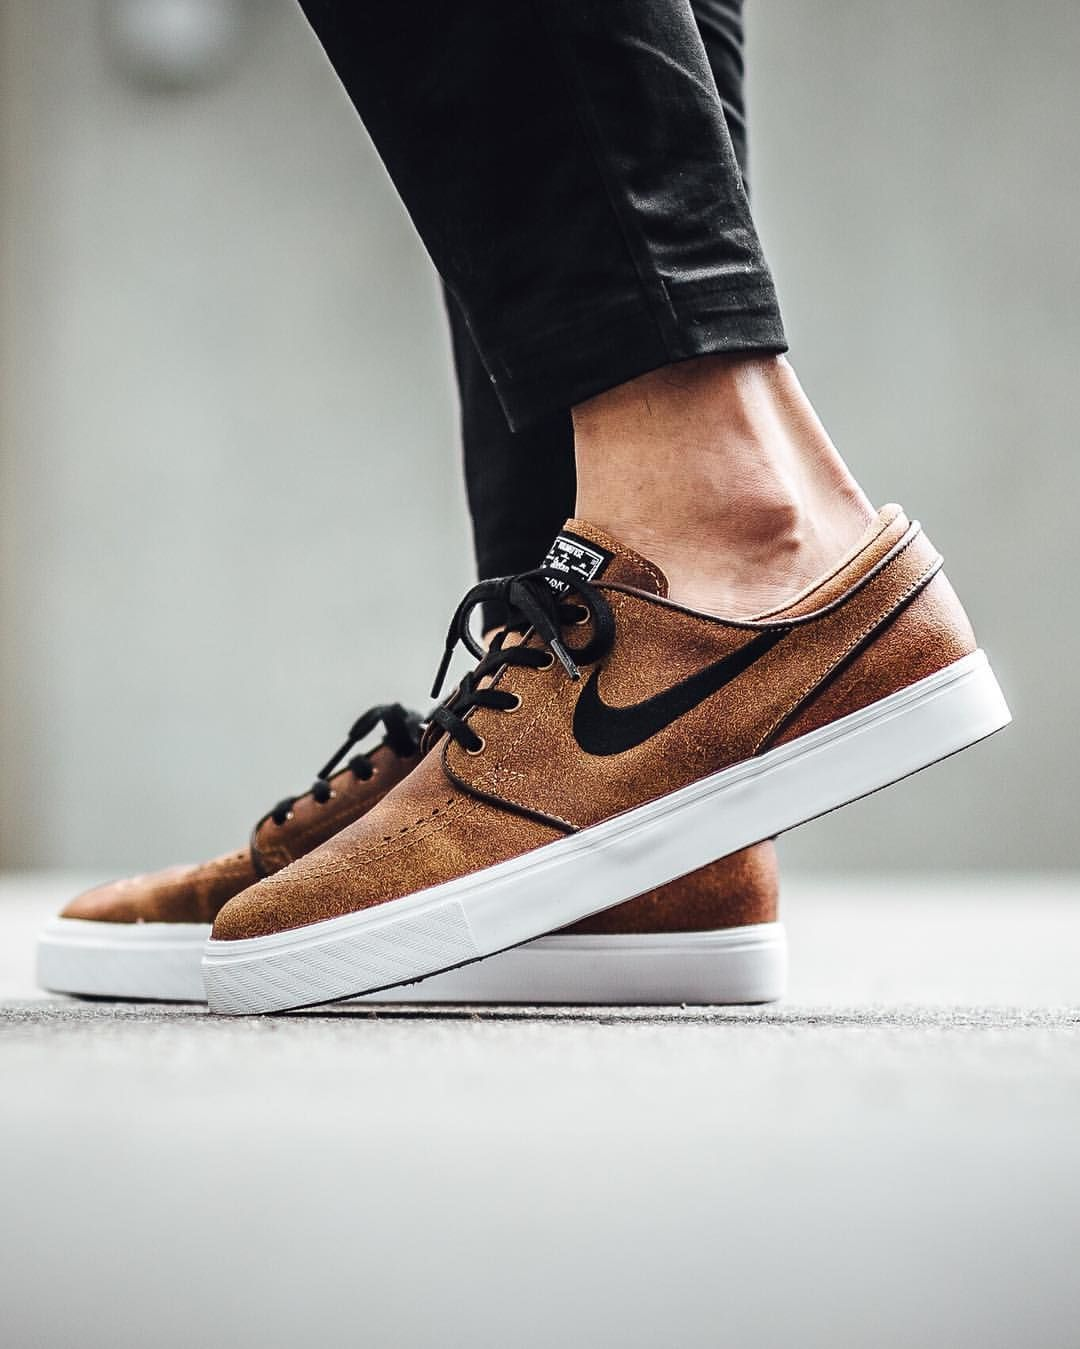 Nike Brown Sb Zoom Stefan Janoski High Tape Men's Skateboarding Shoe for men